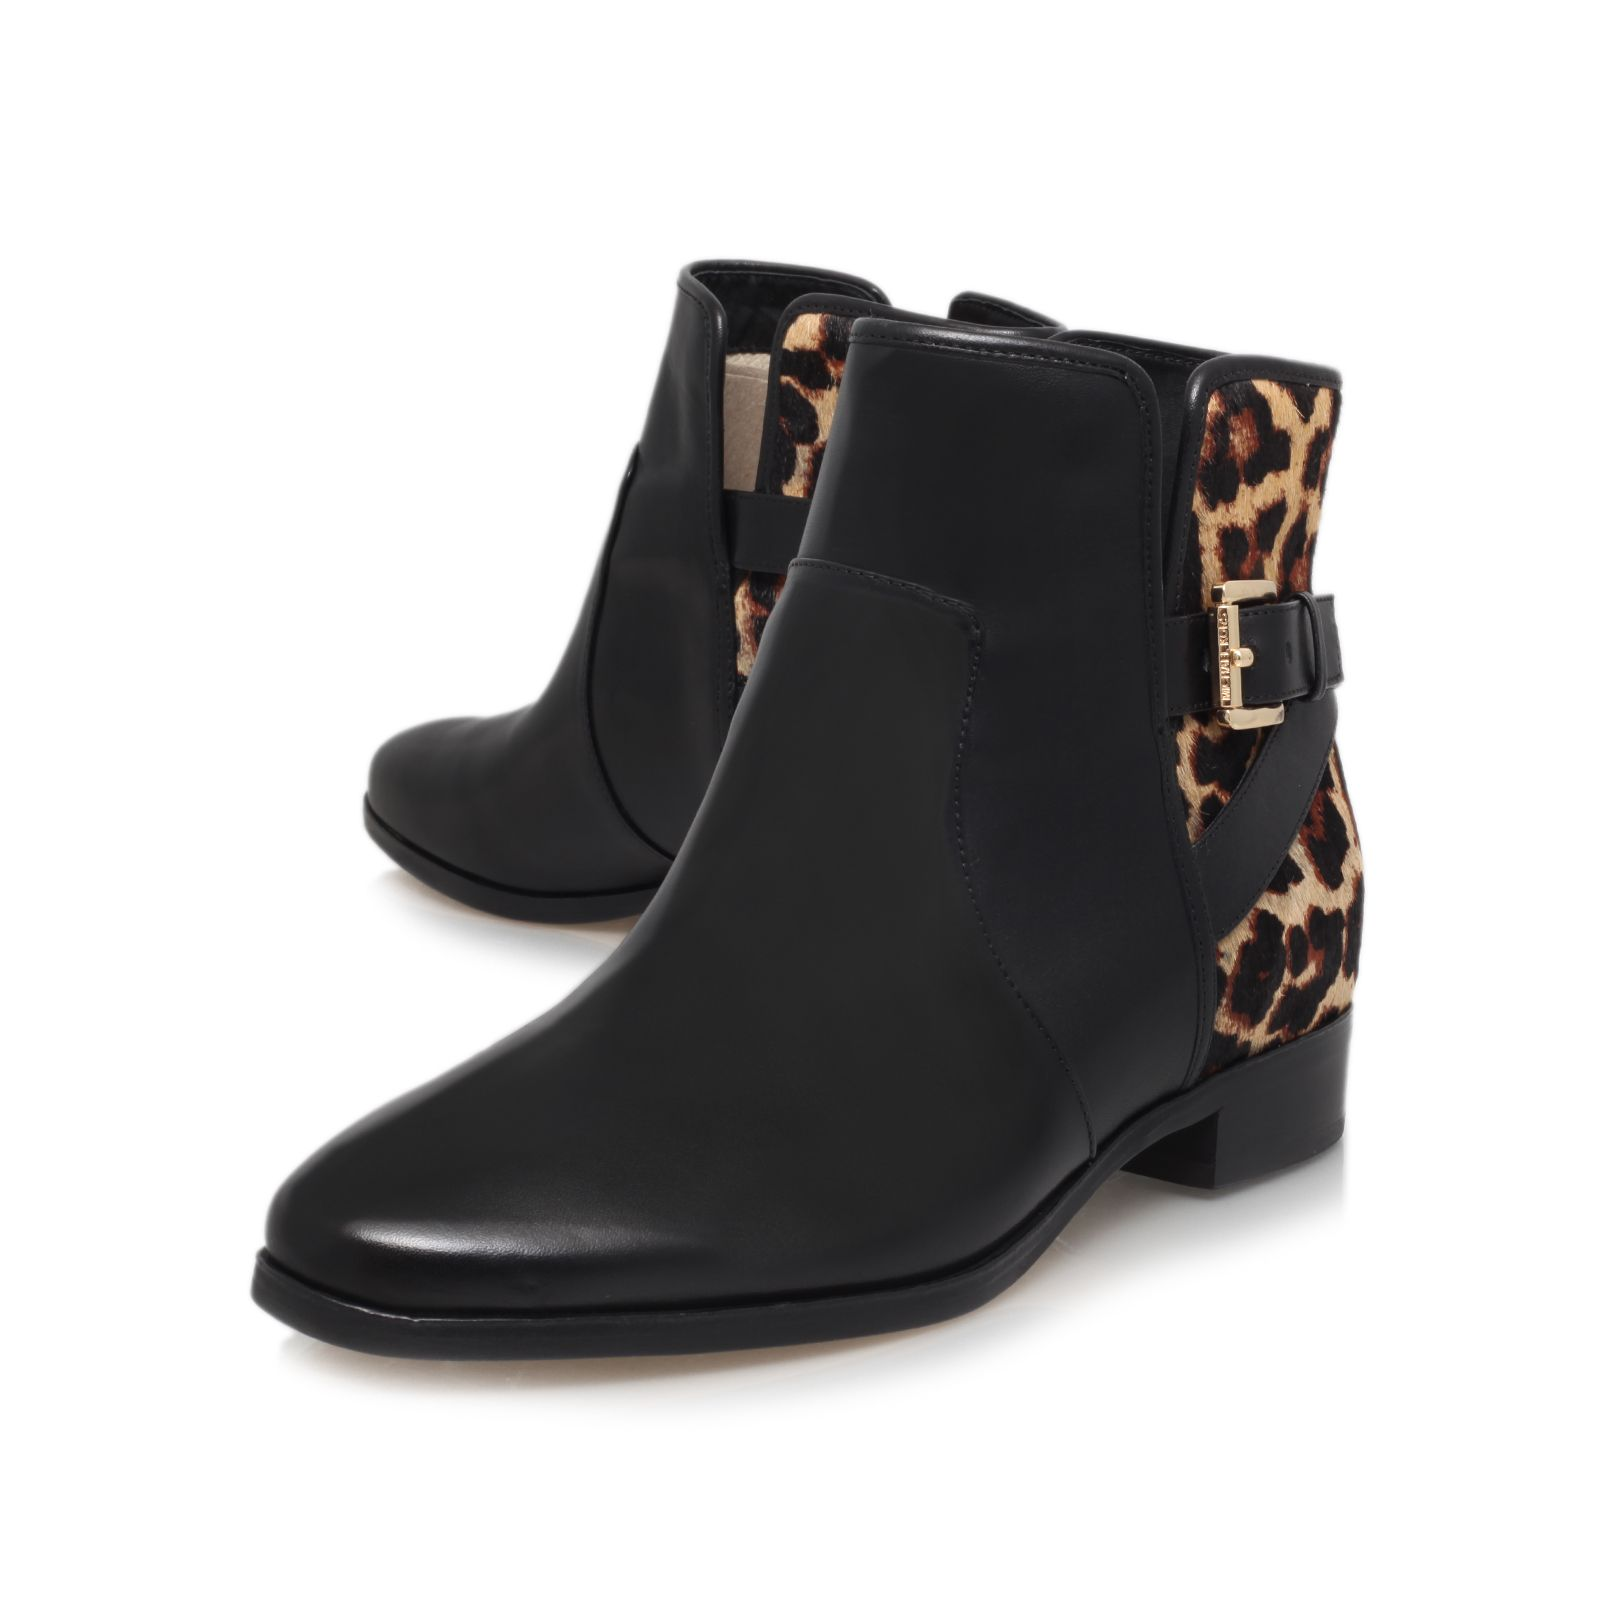 Salem low heel boots